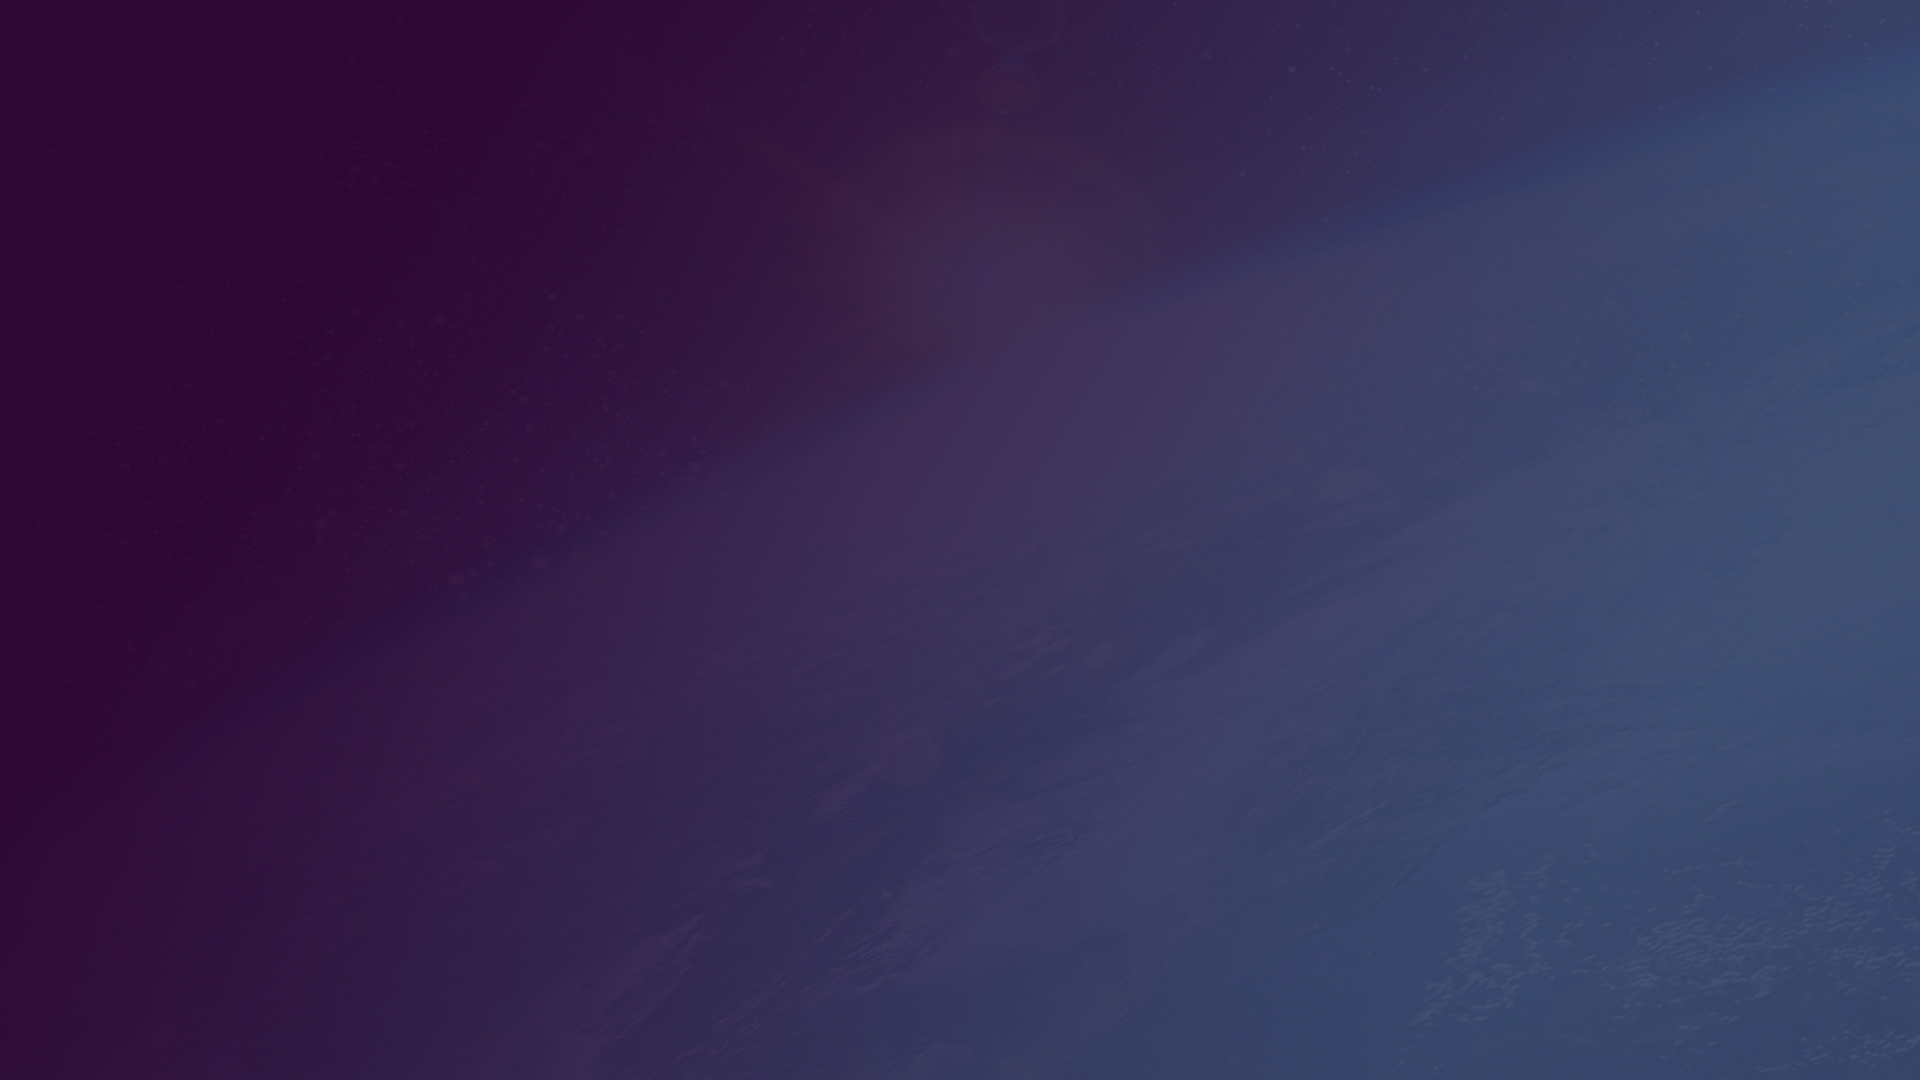 Space bg merged